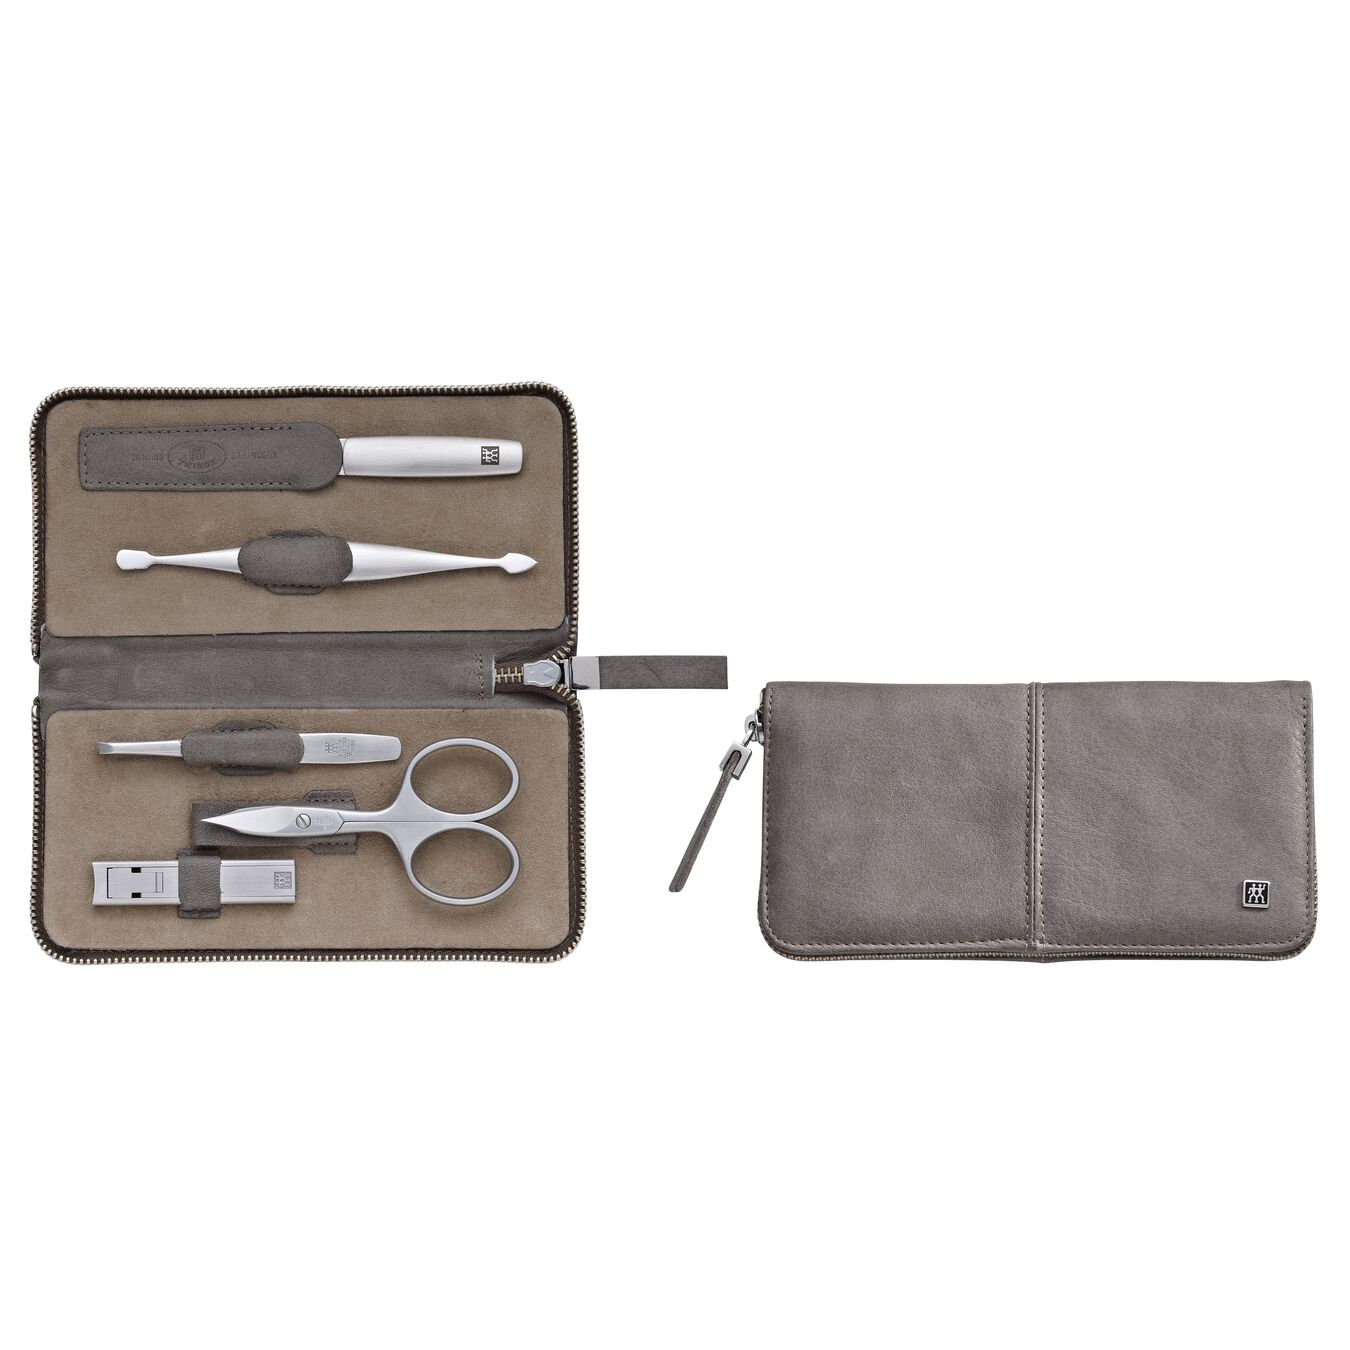 Zip fastener case, 5 Piece | Calf leather | Taupe,,large 1